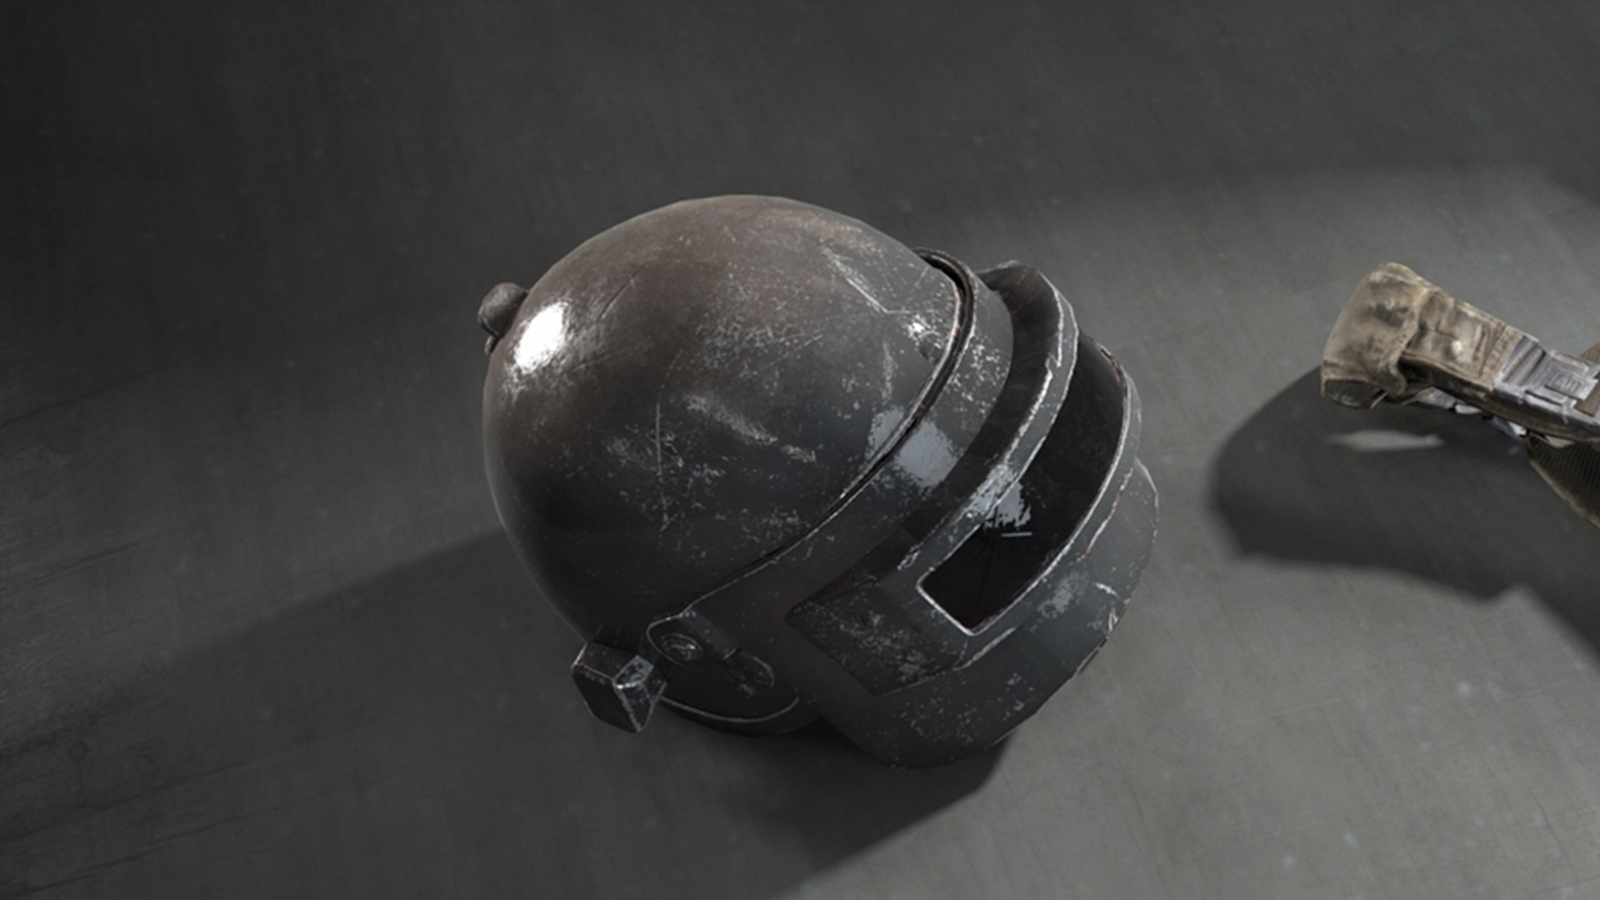 Pubg Mobile Helmet Wallpaper Pubg Pubgwallpapers: PUBG's Best Helmets Are Going To Get Harder To Find